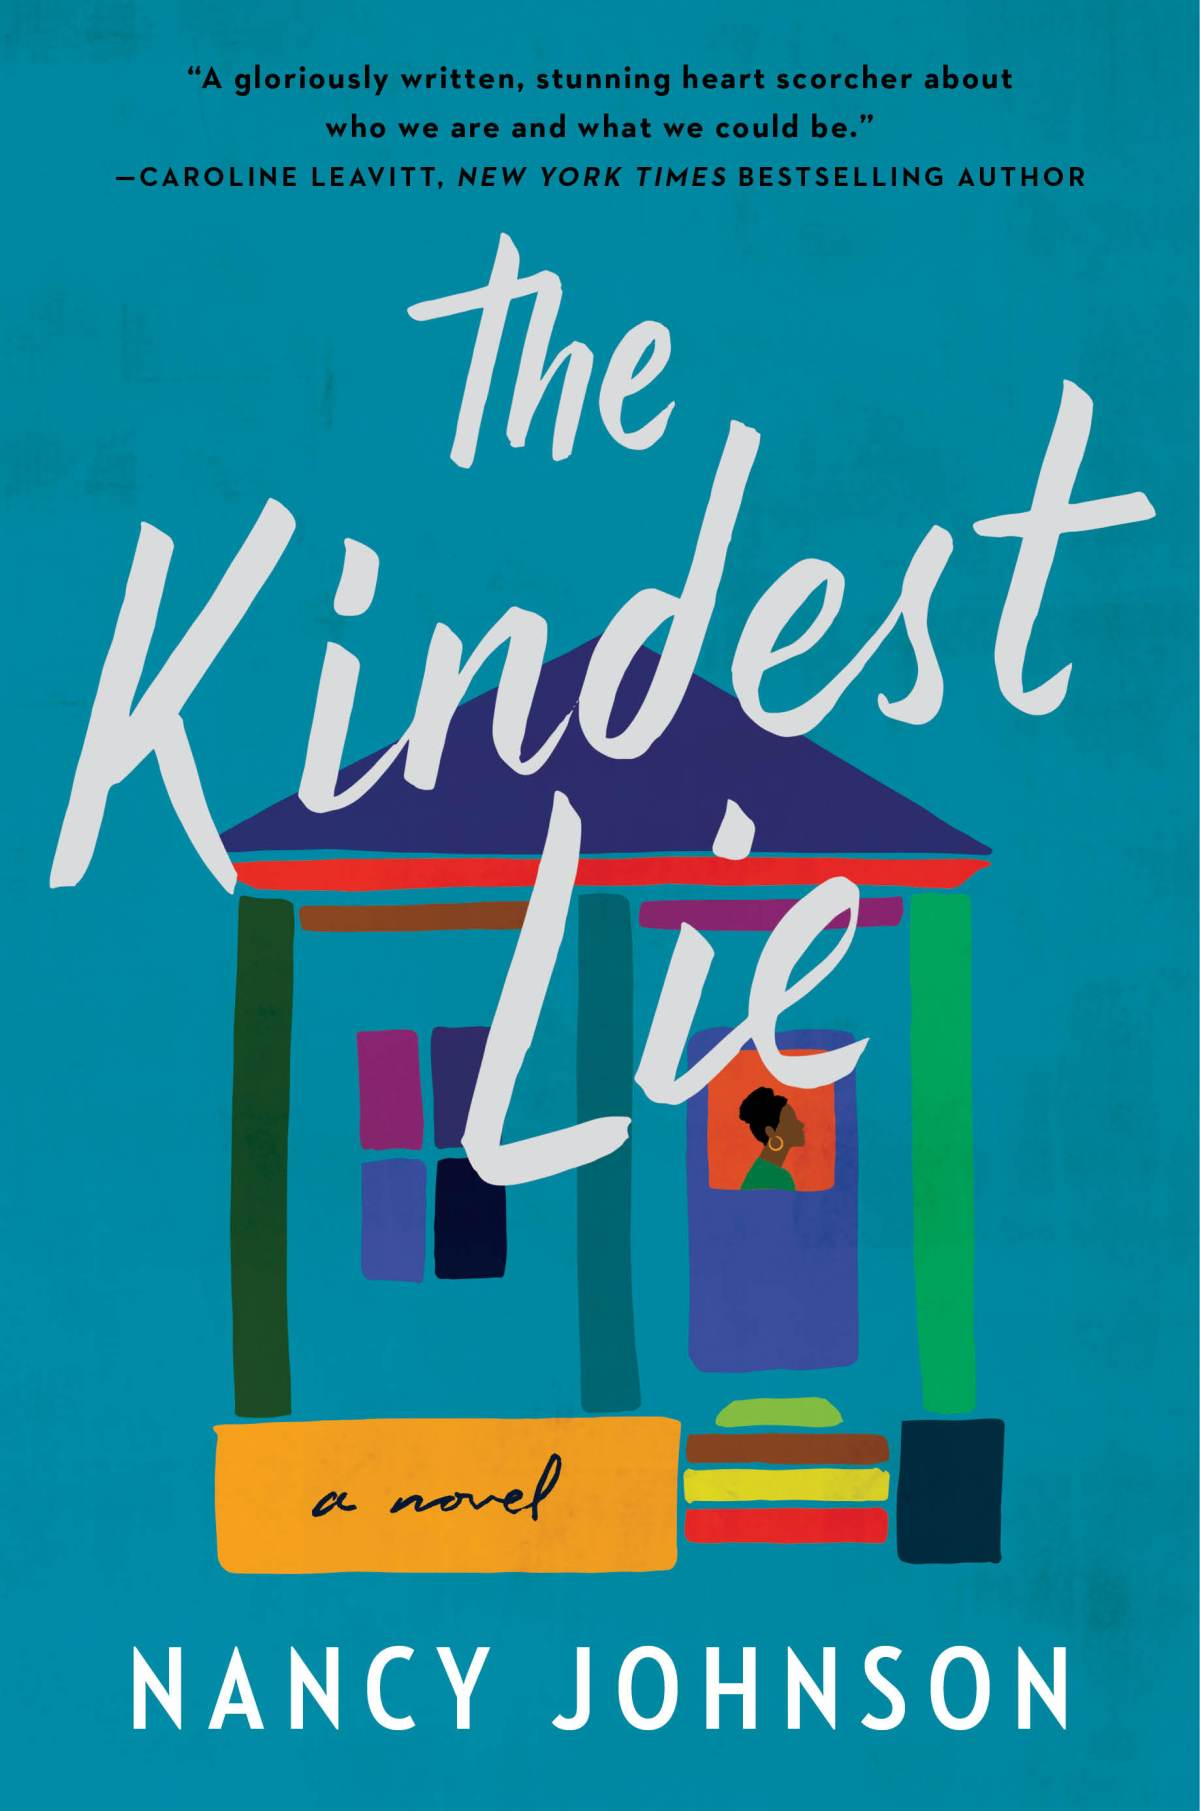 2021 Book 52: THE KINDEST LIE by Nancy Johnson